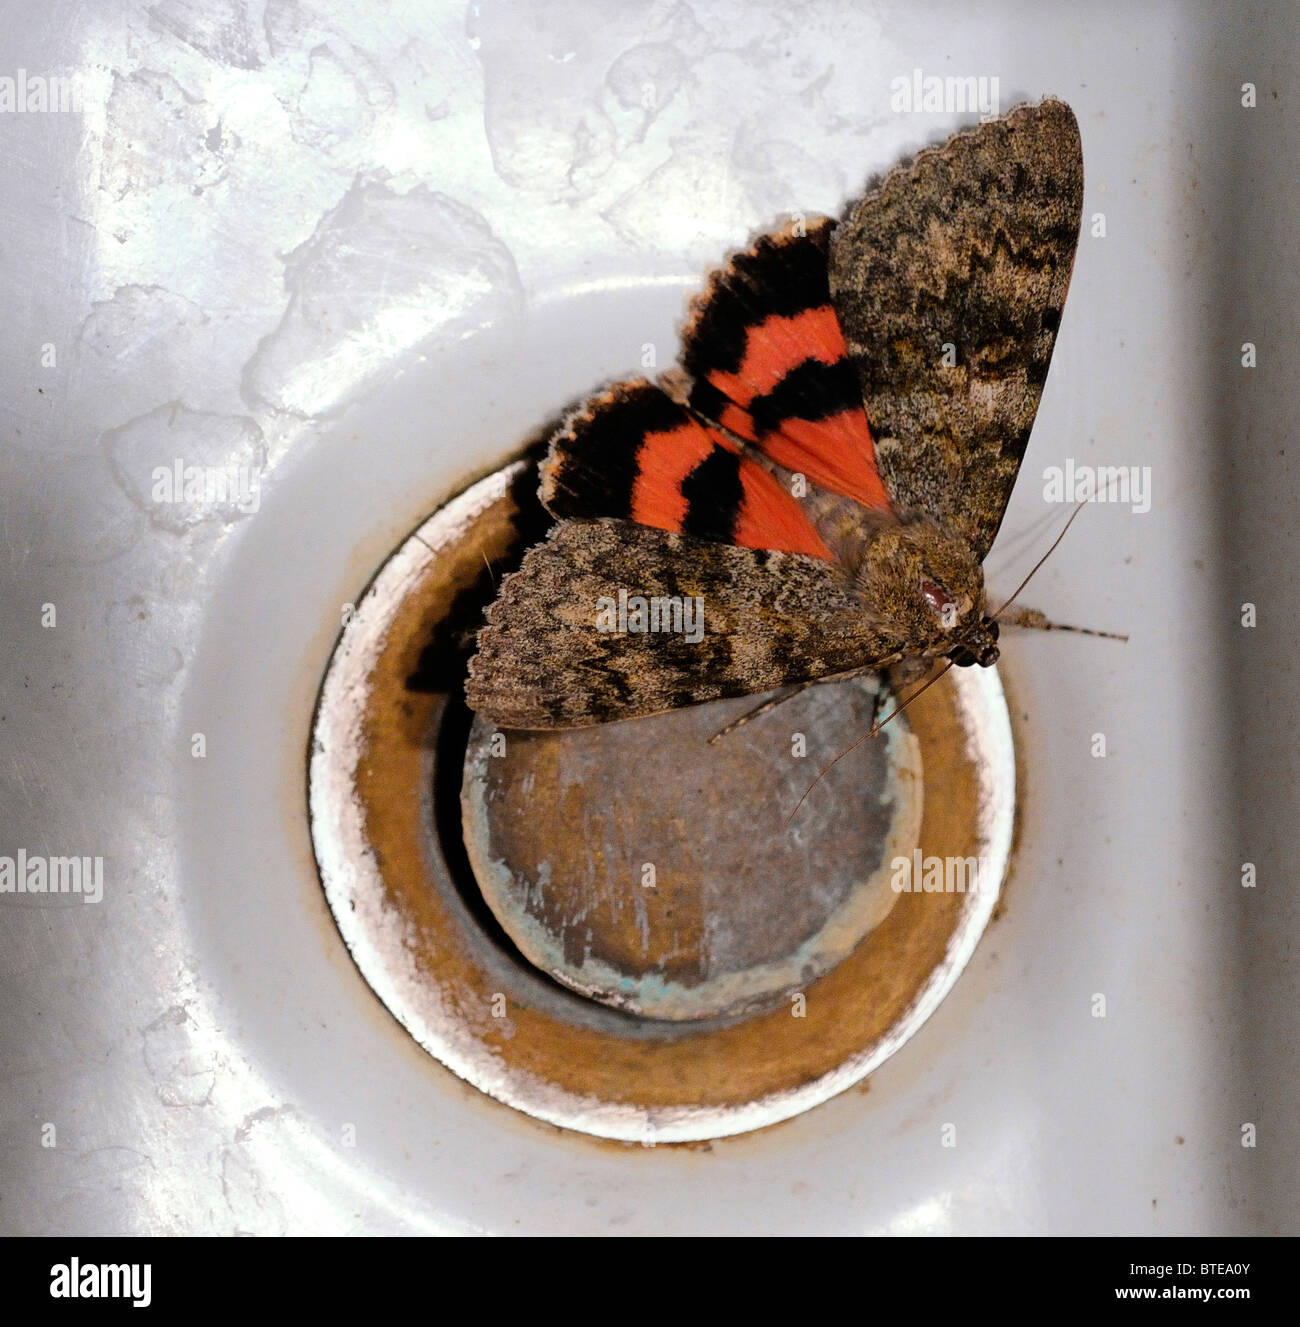 Sweetheart underwing moth on sink drain - Stock Image